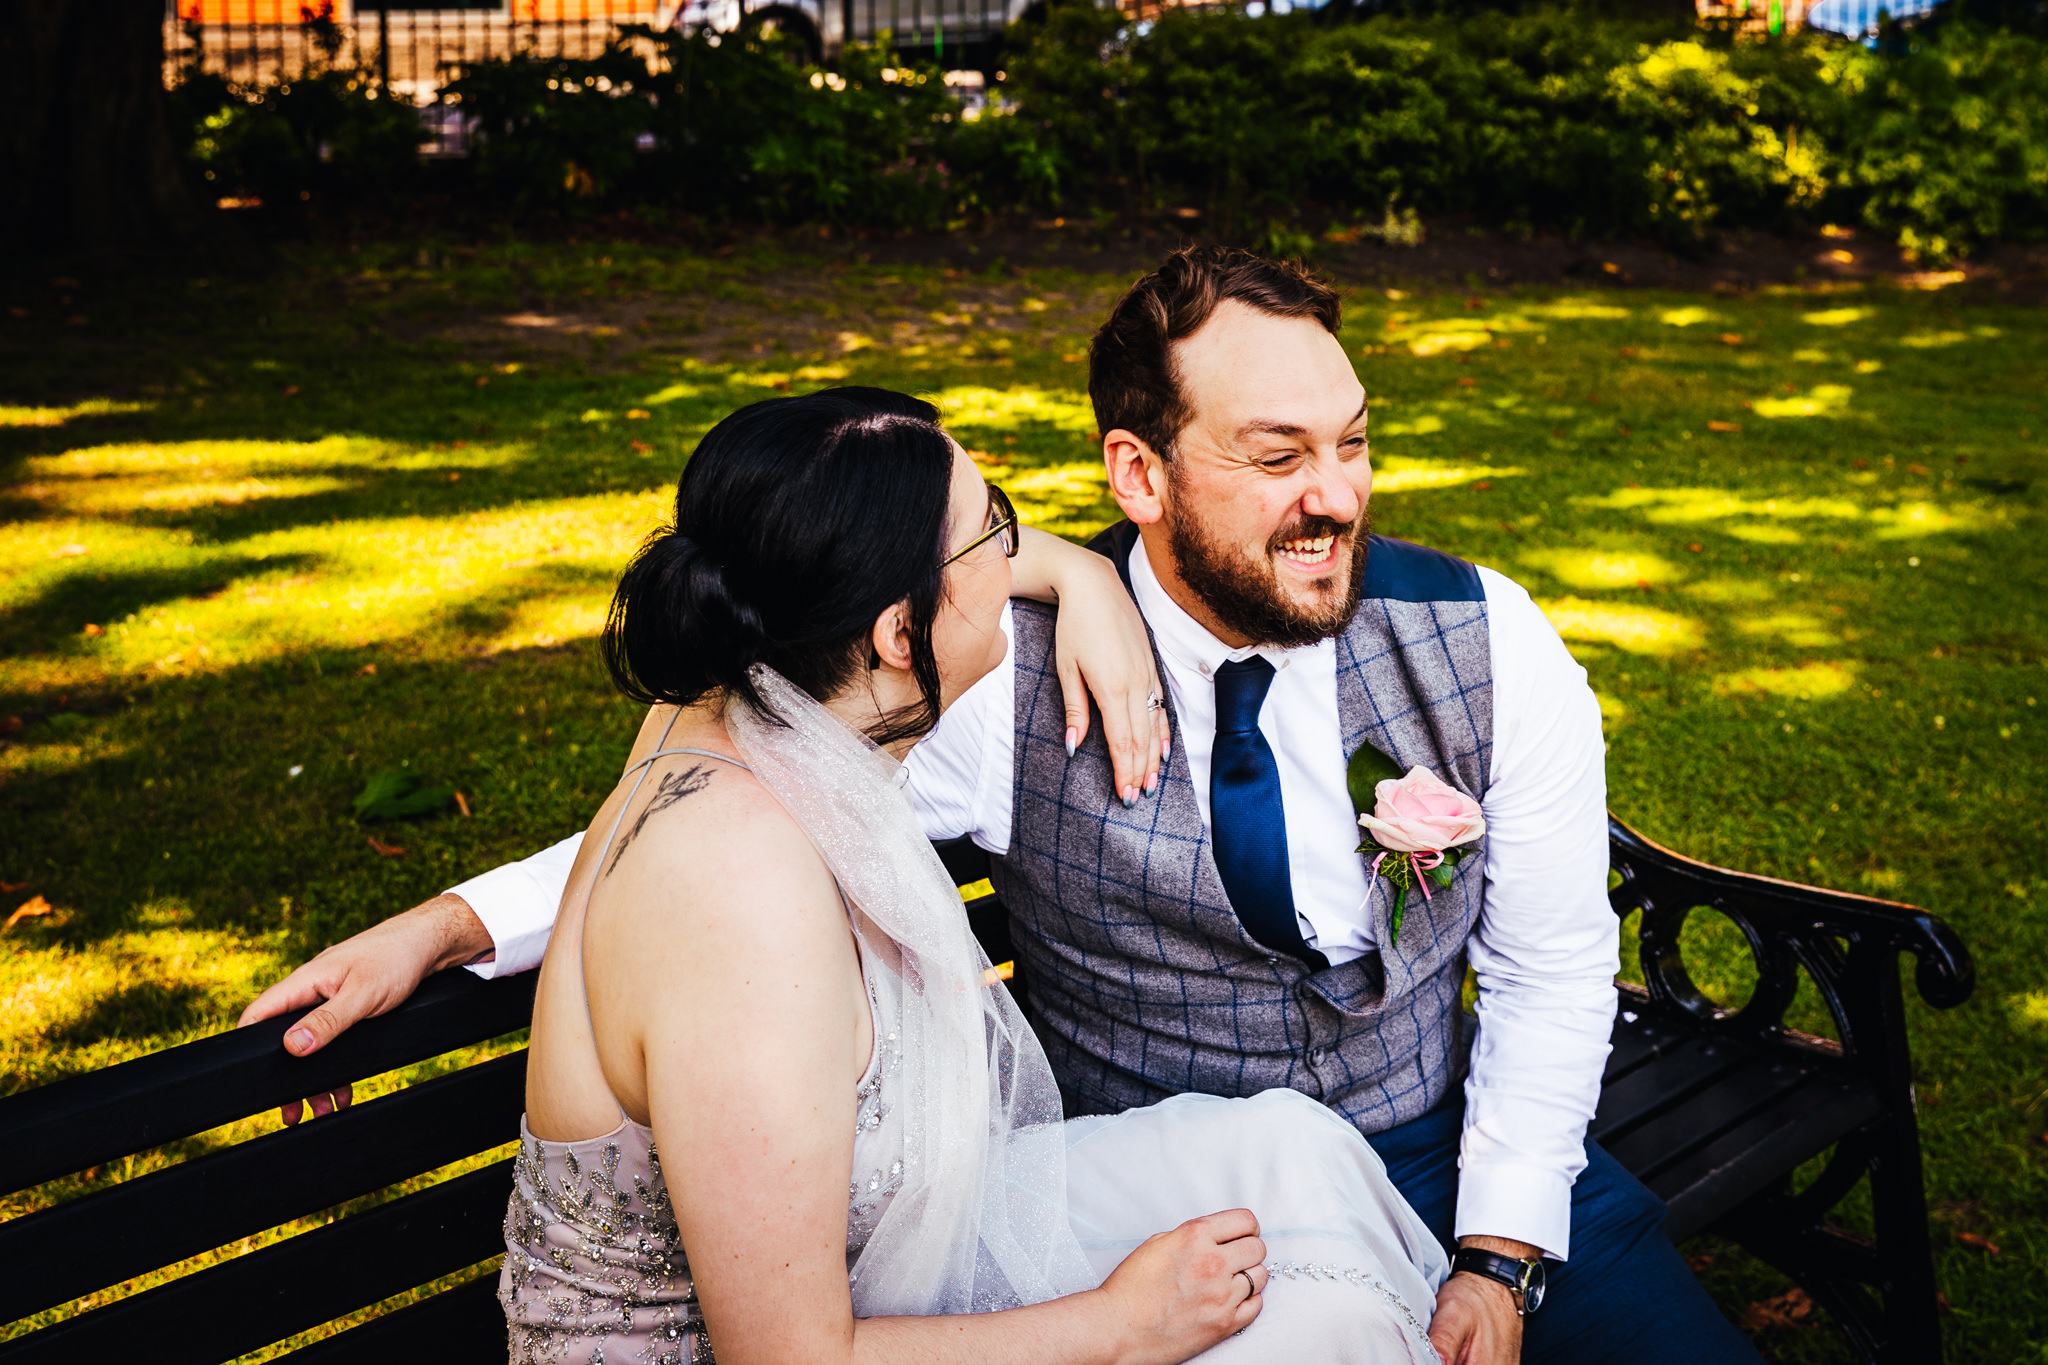 Wedding Photography Nottingham Bride and groom sat on a bench laughing together after ceremony